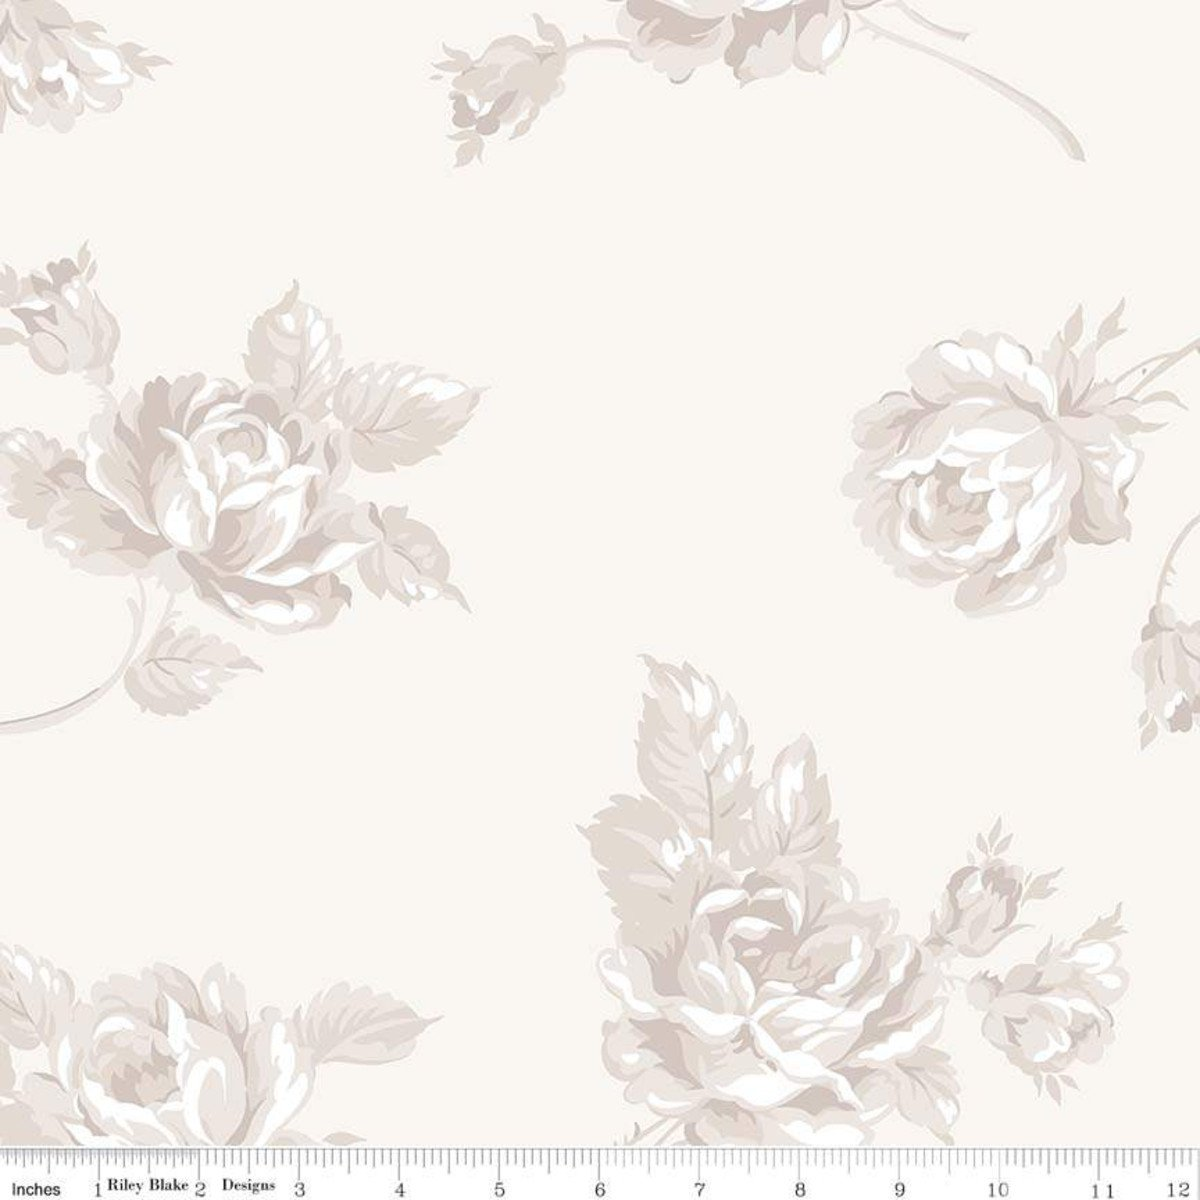 107/108 Serenity Floral Wide Quilt Backing by Gerri Robinson of Planted Seed Designs for Riley Blake Designs - Cream